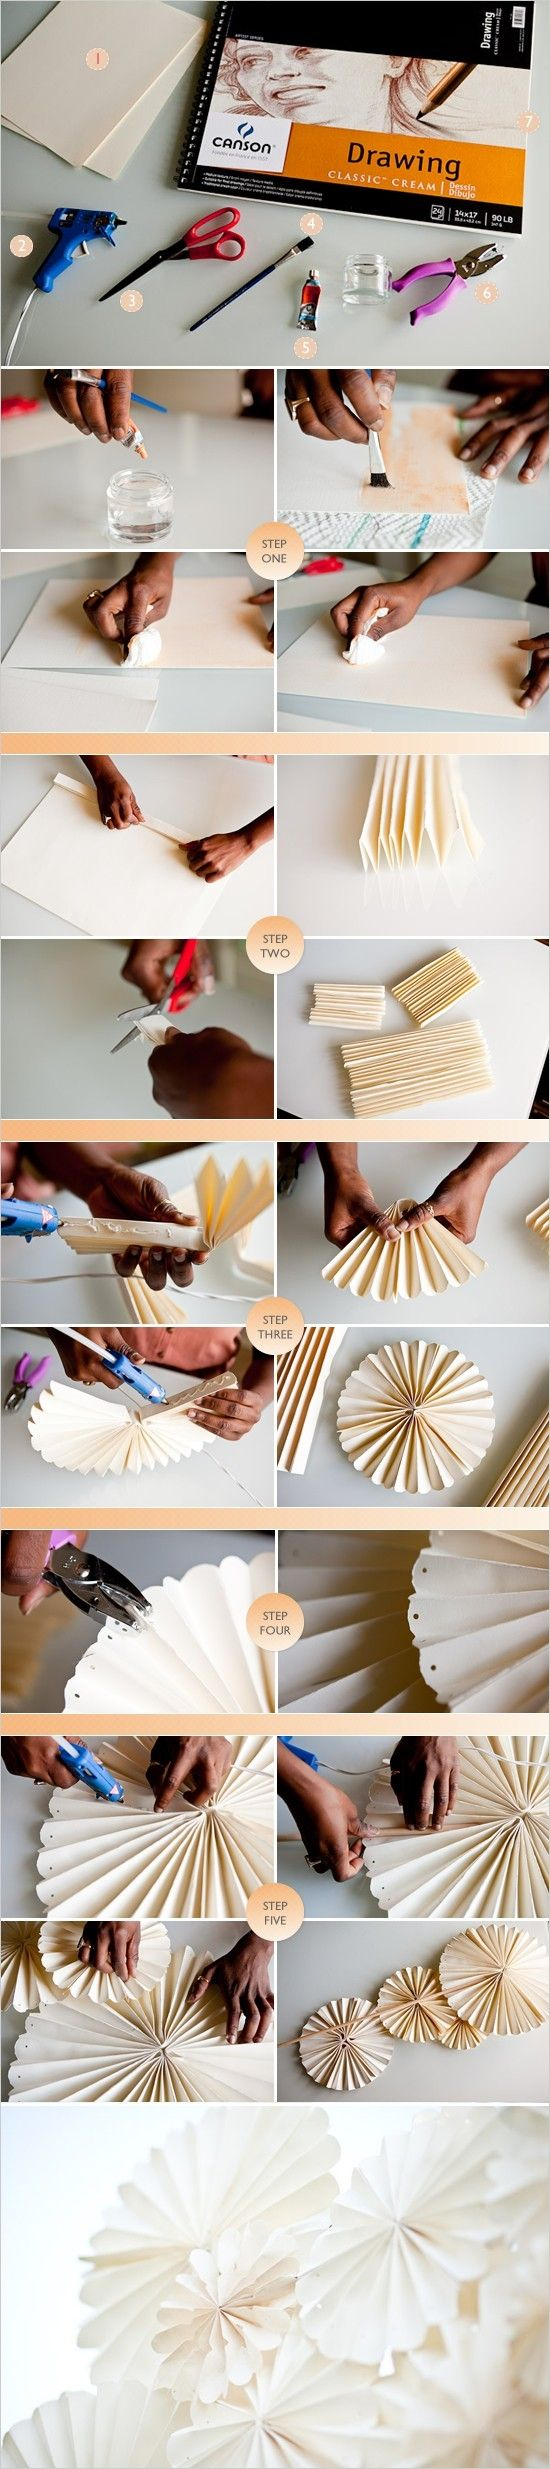 diy pinwheels how to by ruby - Idea for bake sale décor cheap and easy